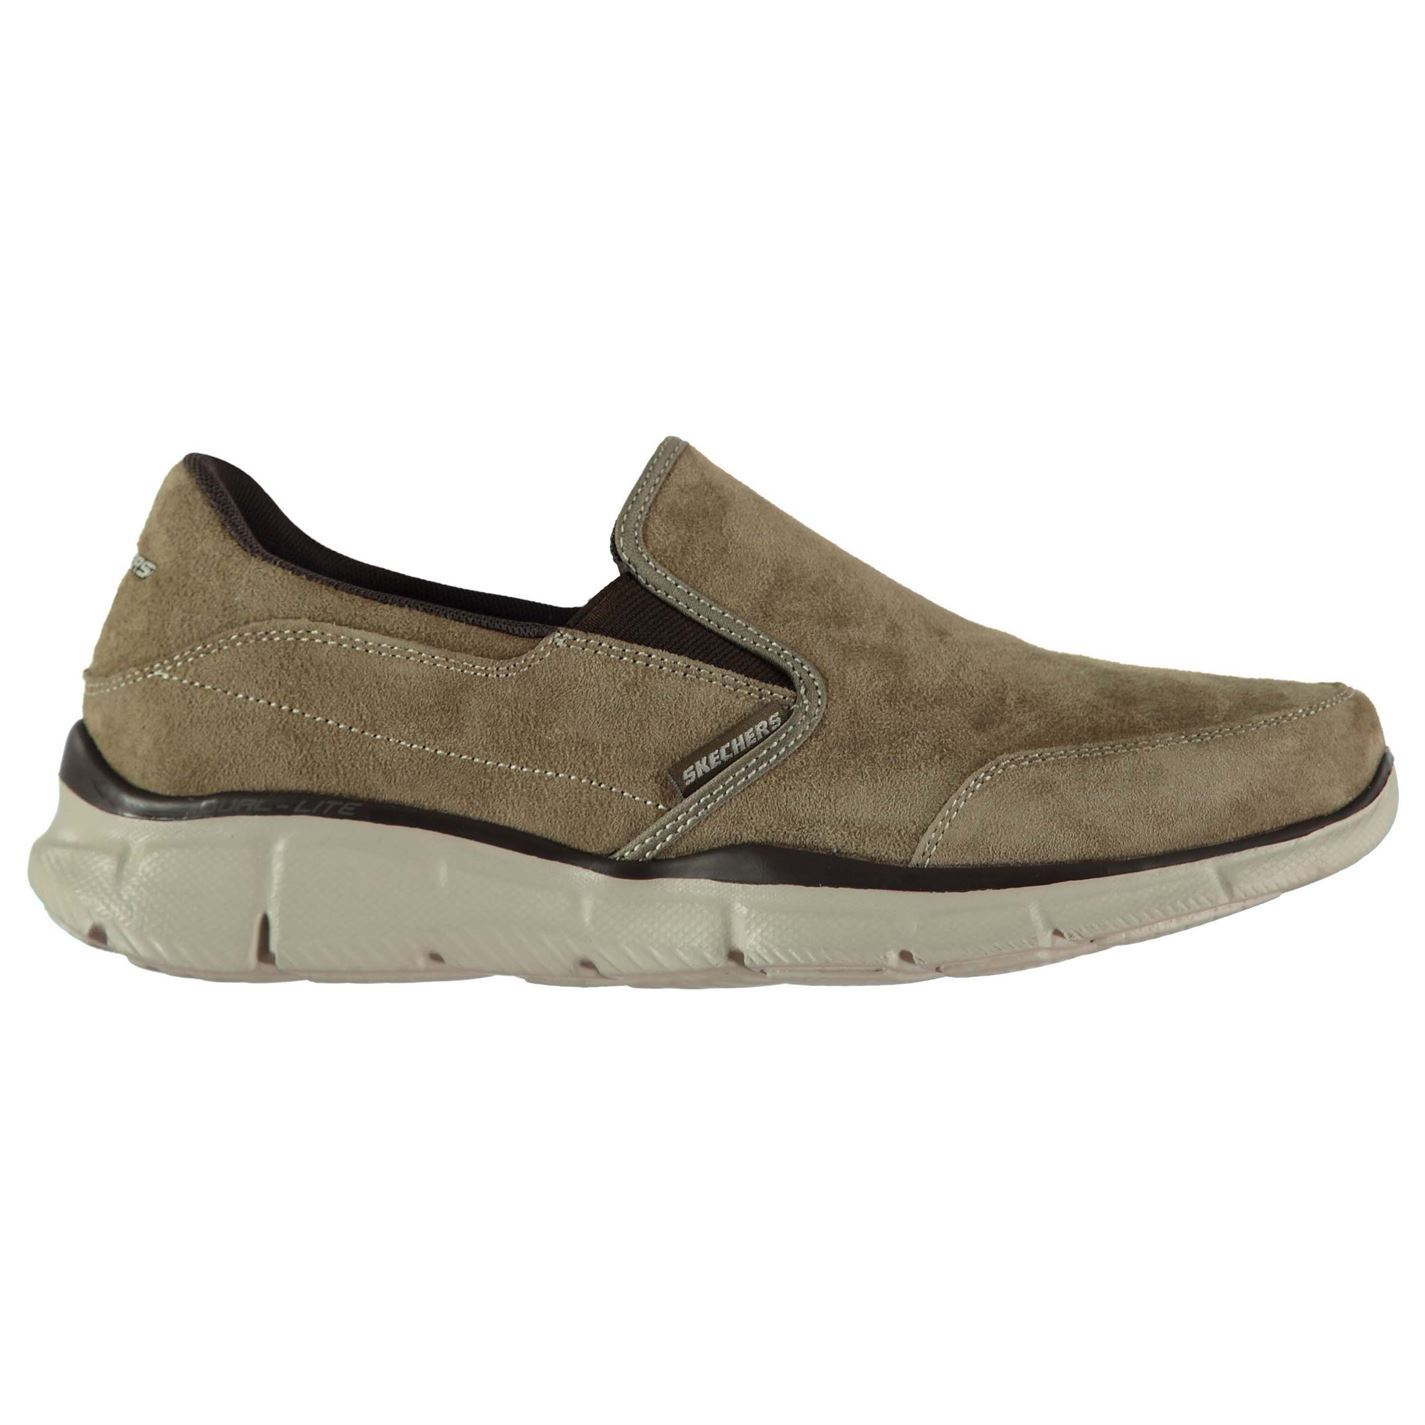 Skechers-Mens-Go-Walk-4-Trainers-Slip-On-Shoes-Casual-Everyday-Tonal-Stitching